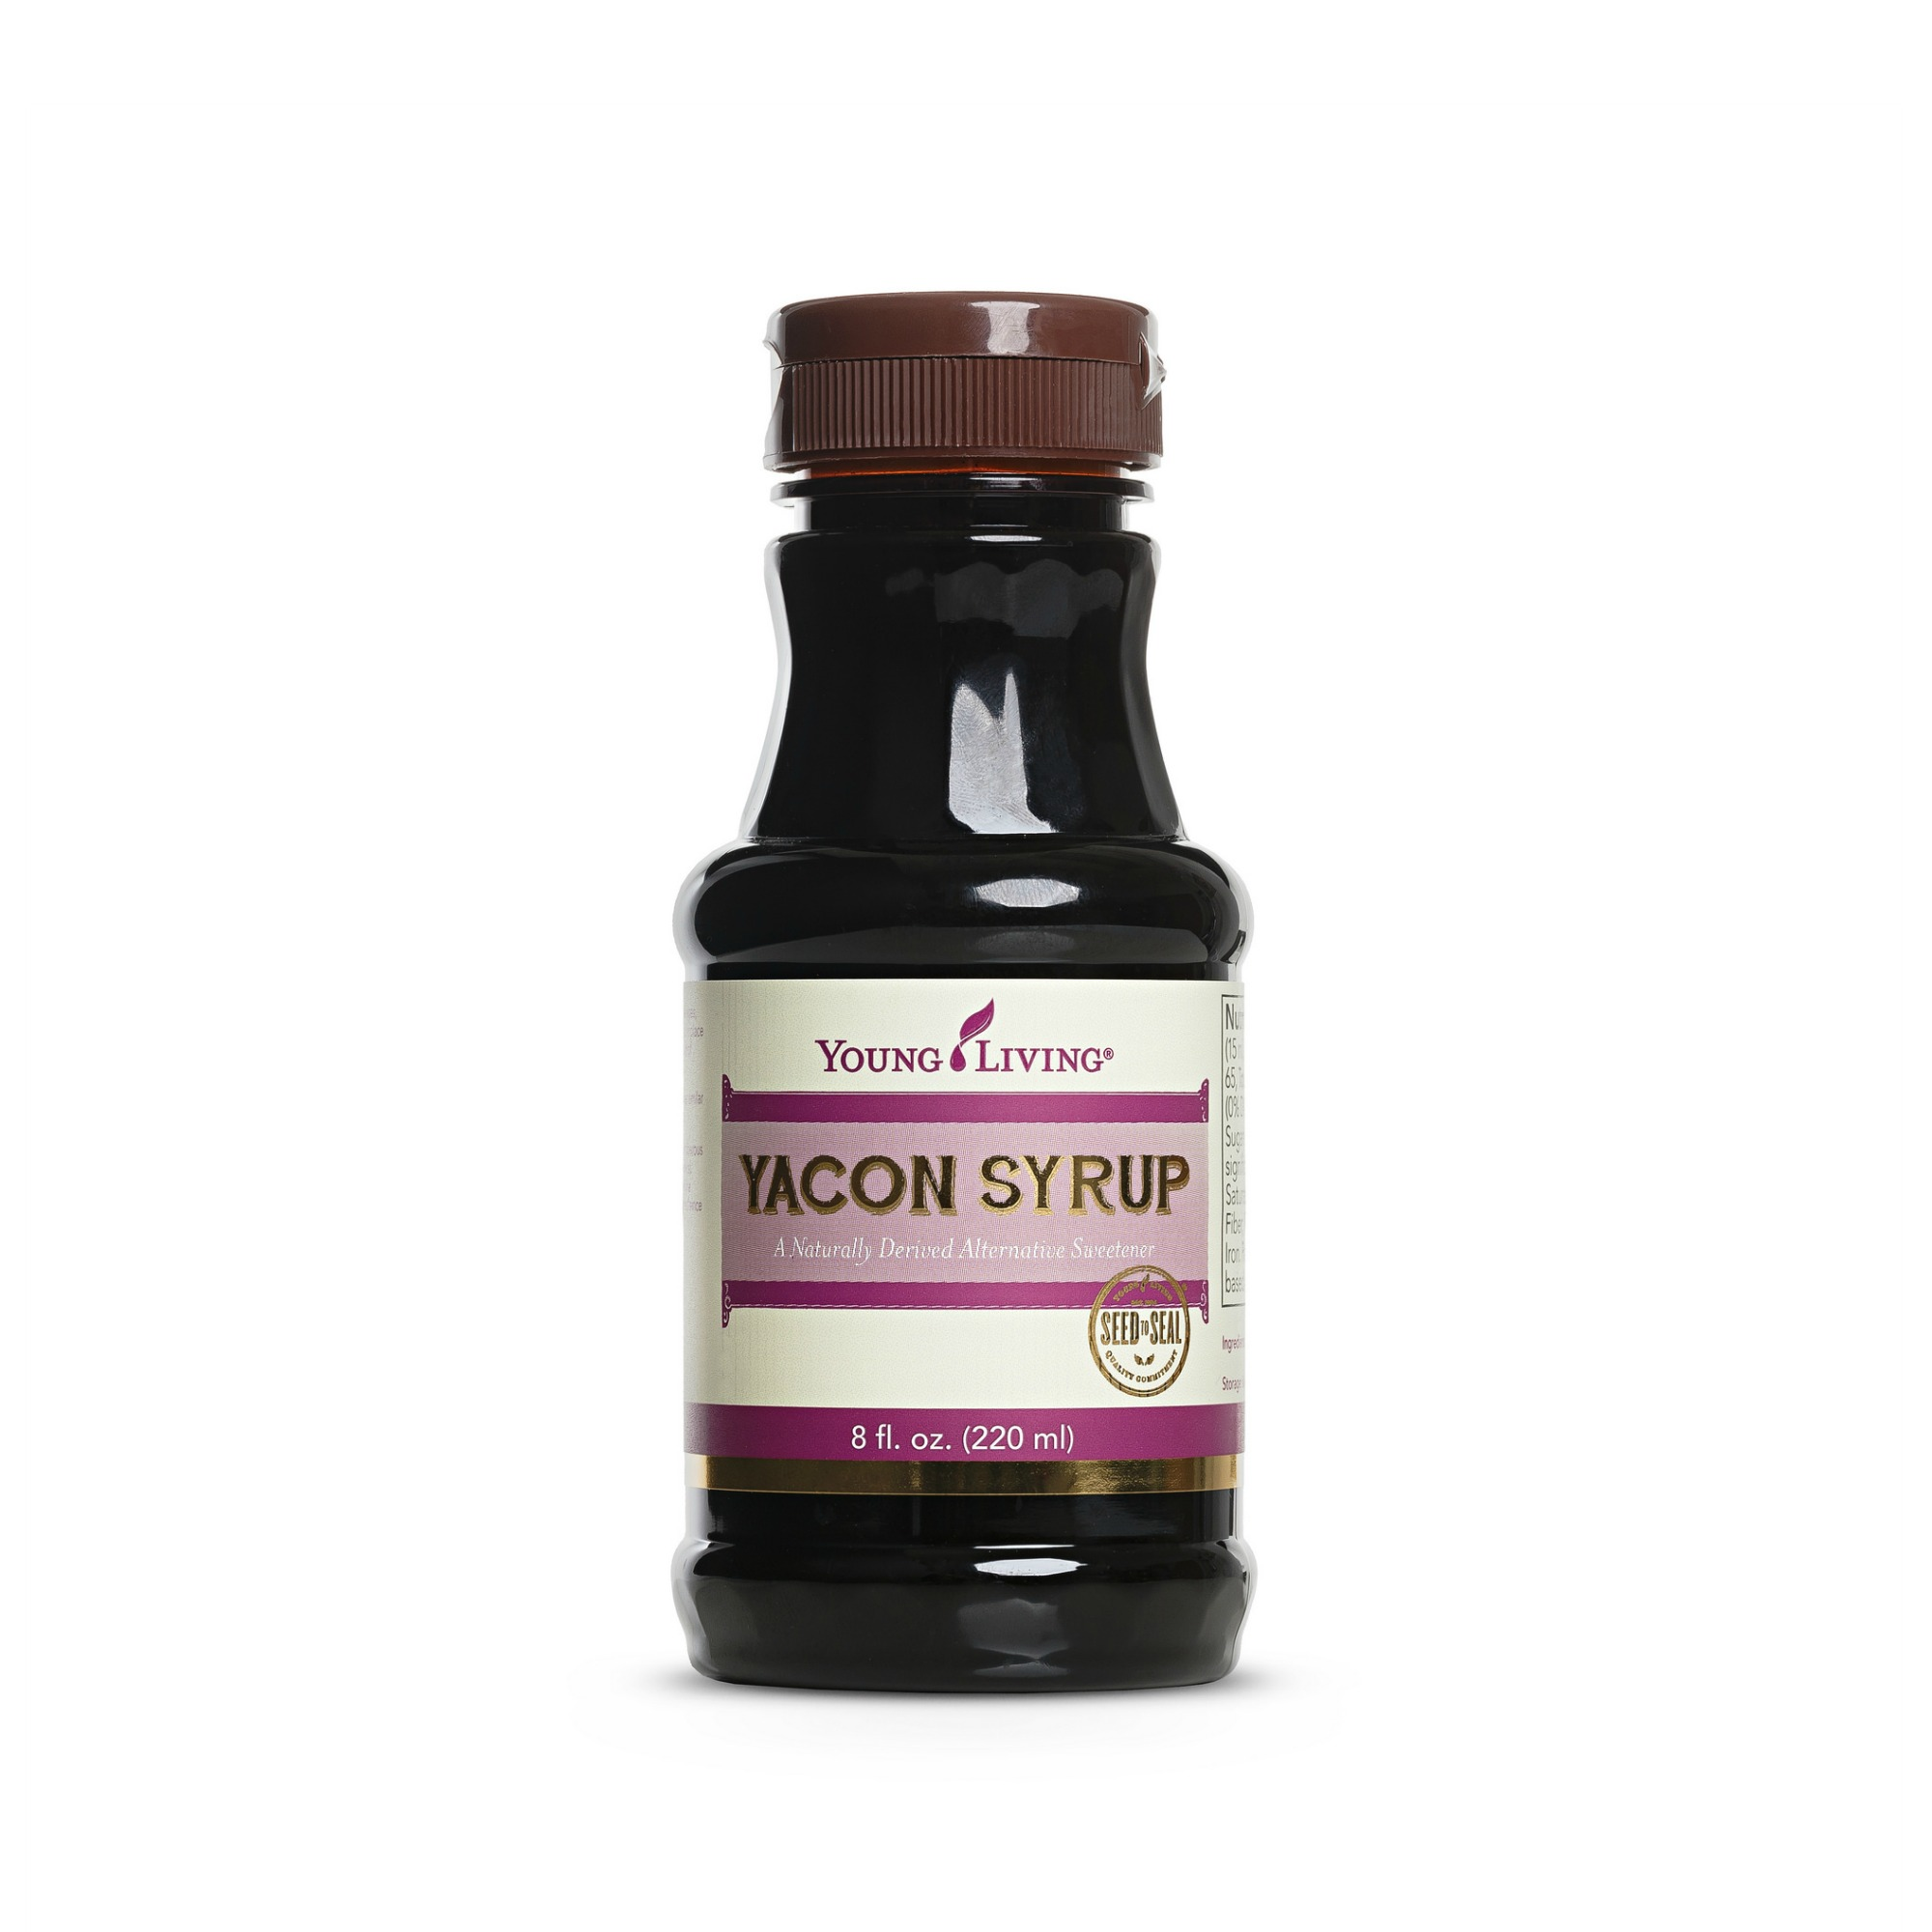 YACON SYRUP    Yacon Syrup is a natural alternative sweetener, similar to honey, maple syrup, molasses, or sugar cane syrup. Grown in the Andes Mountains and used since pre-Inca times, this delicious sweetener is the perfect choice for beverages, cooking, cereal, baking, and other recipes.   Click here   to learn more about this product.